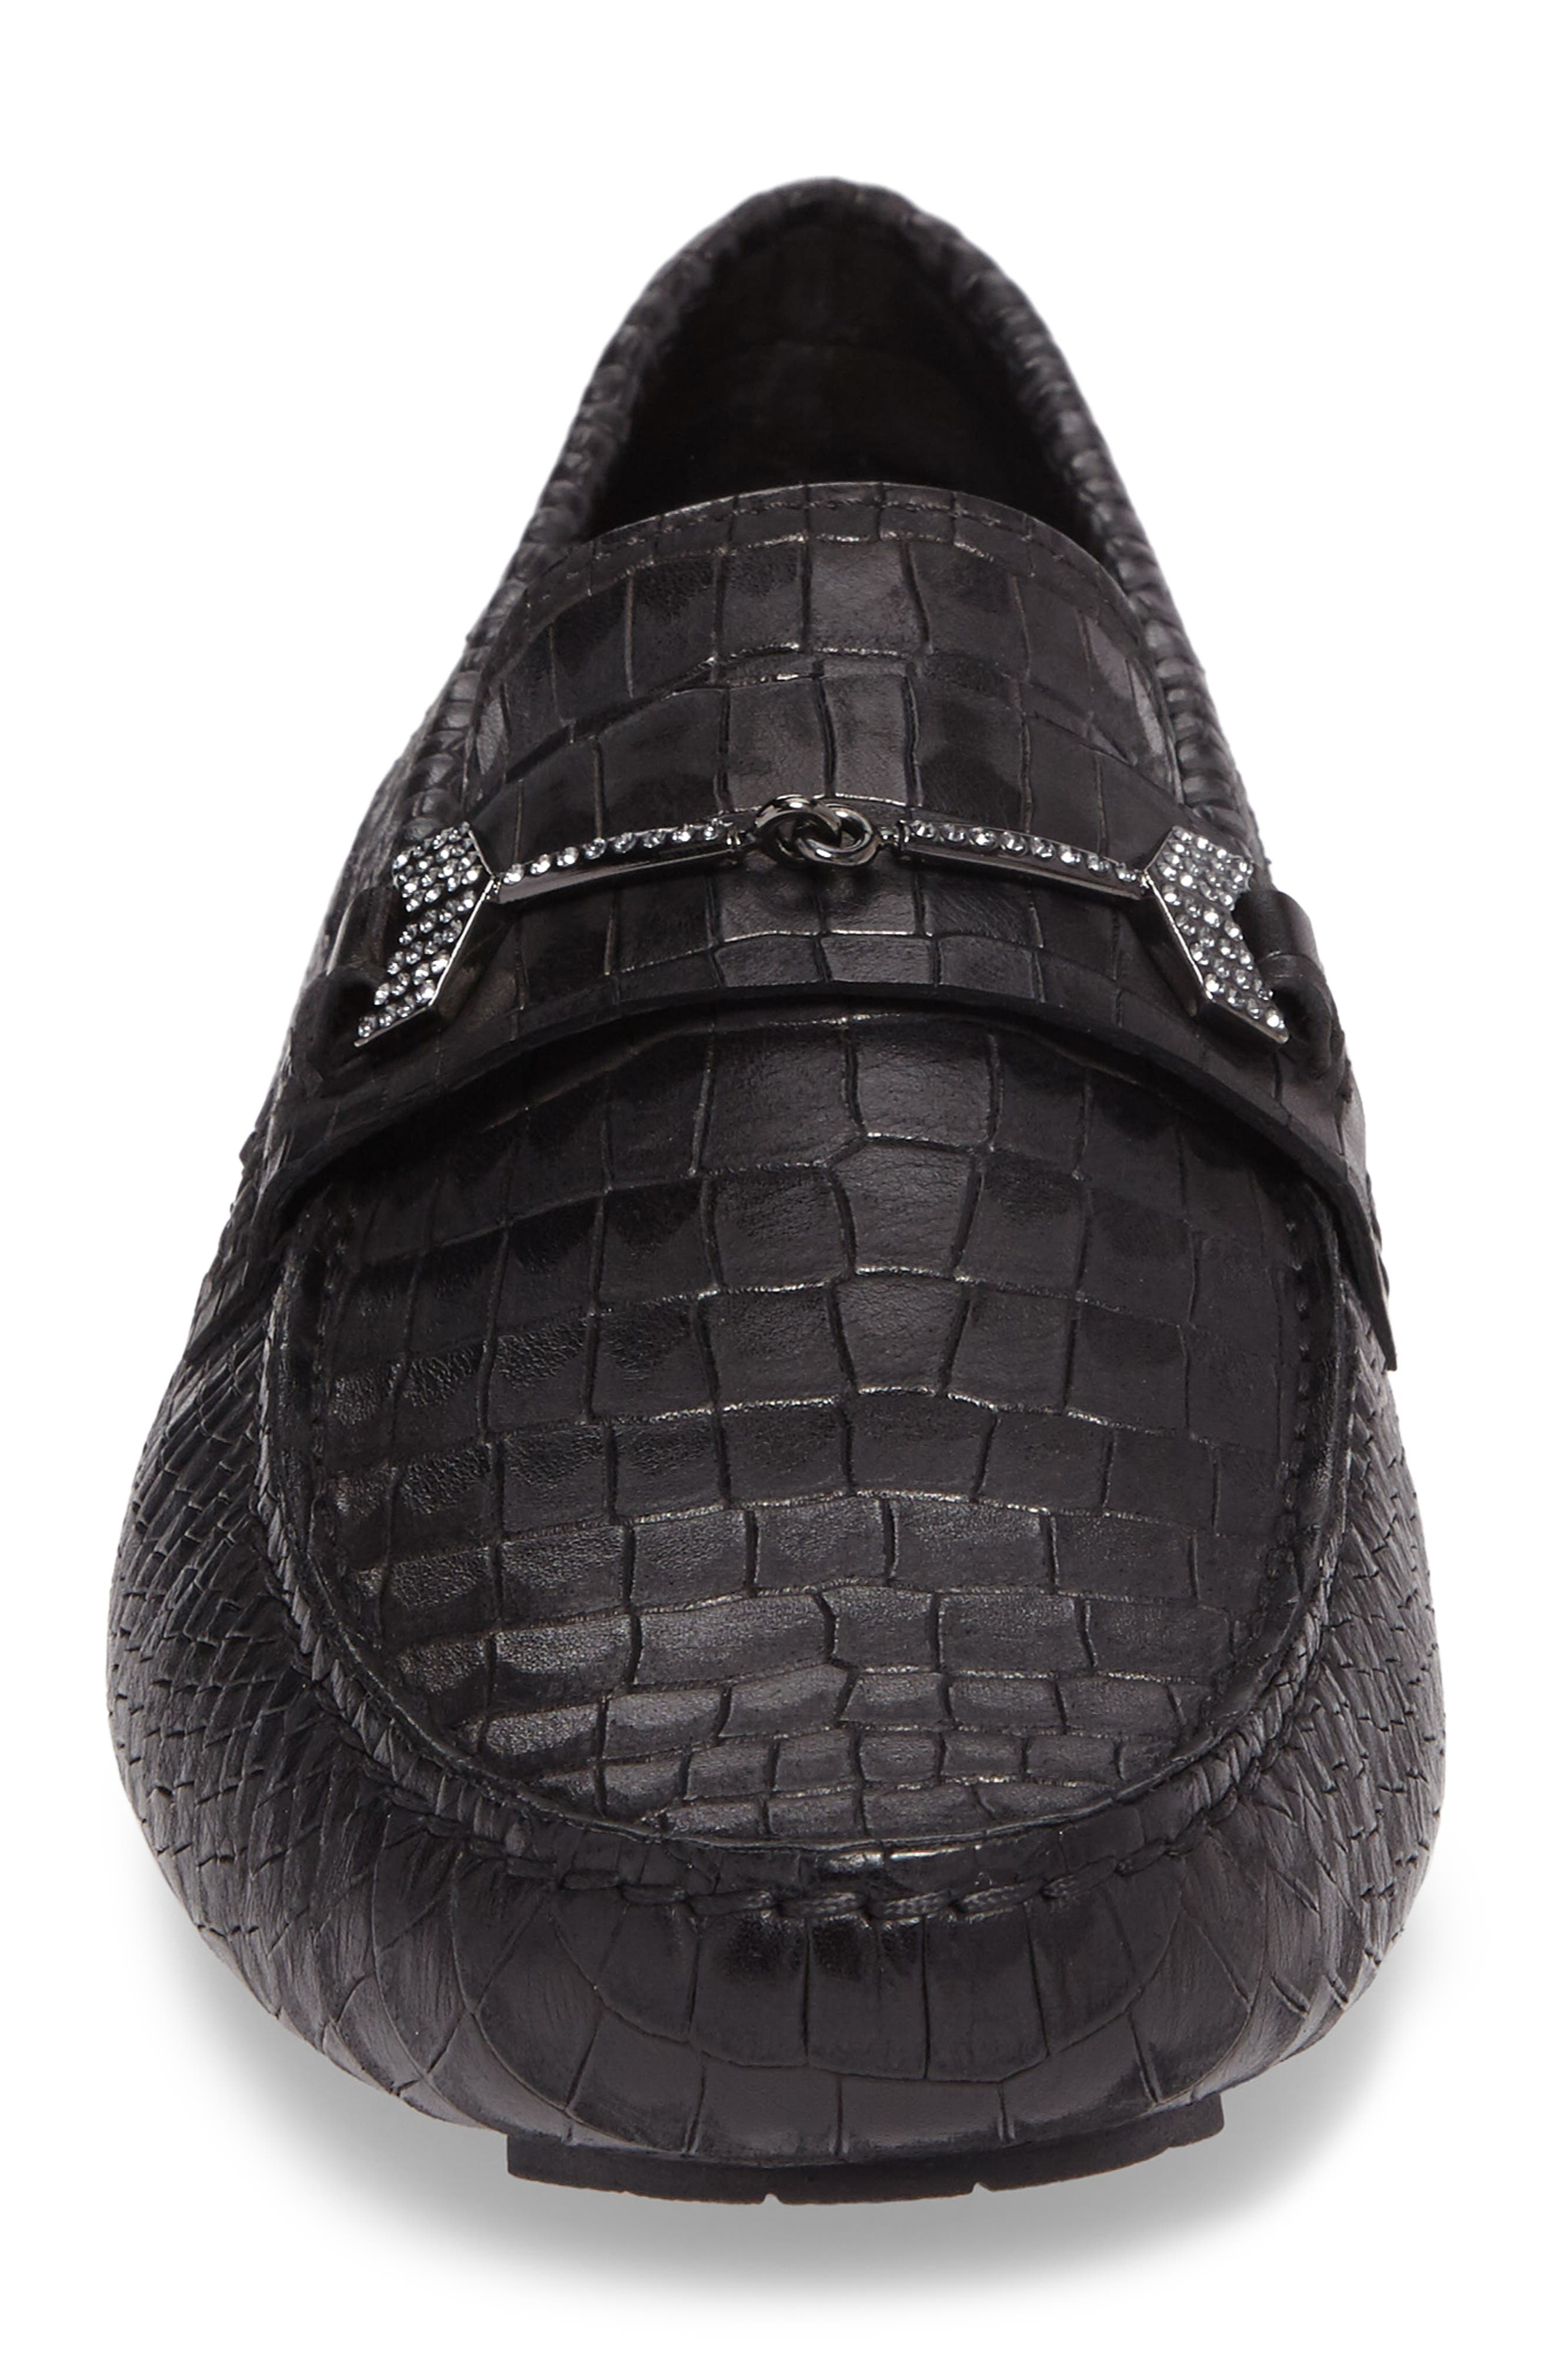 Brewer Croc Textured Driving Loafer,                             Alternate thumbnail 4, color,                             Black